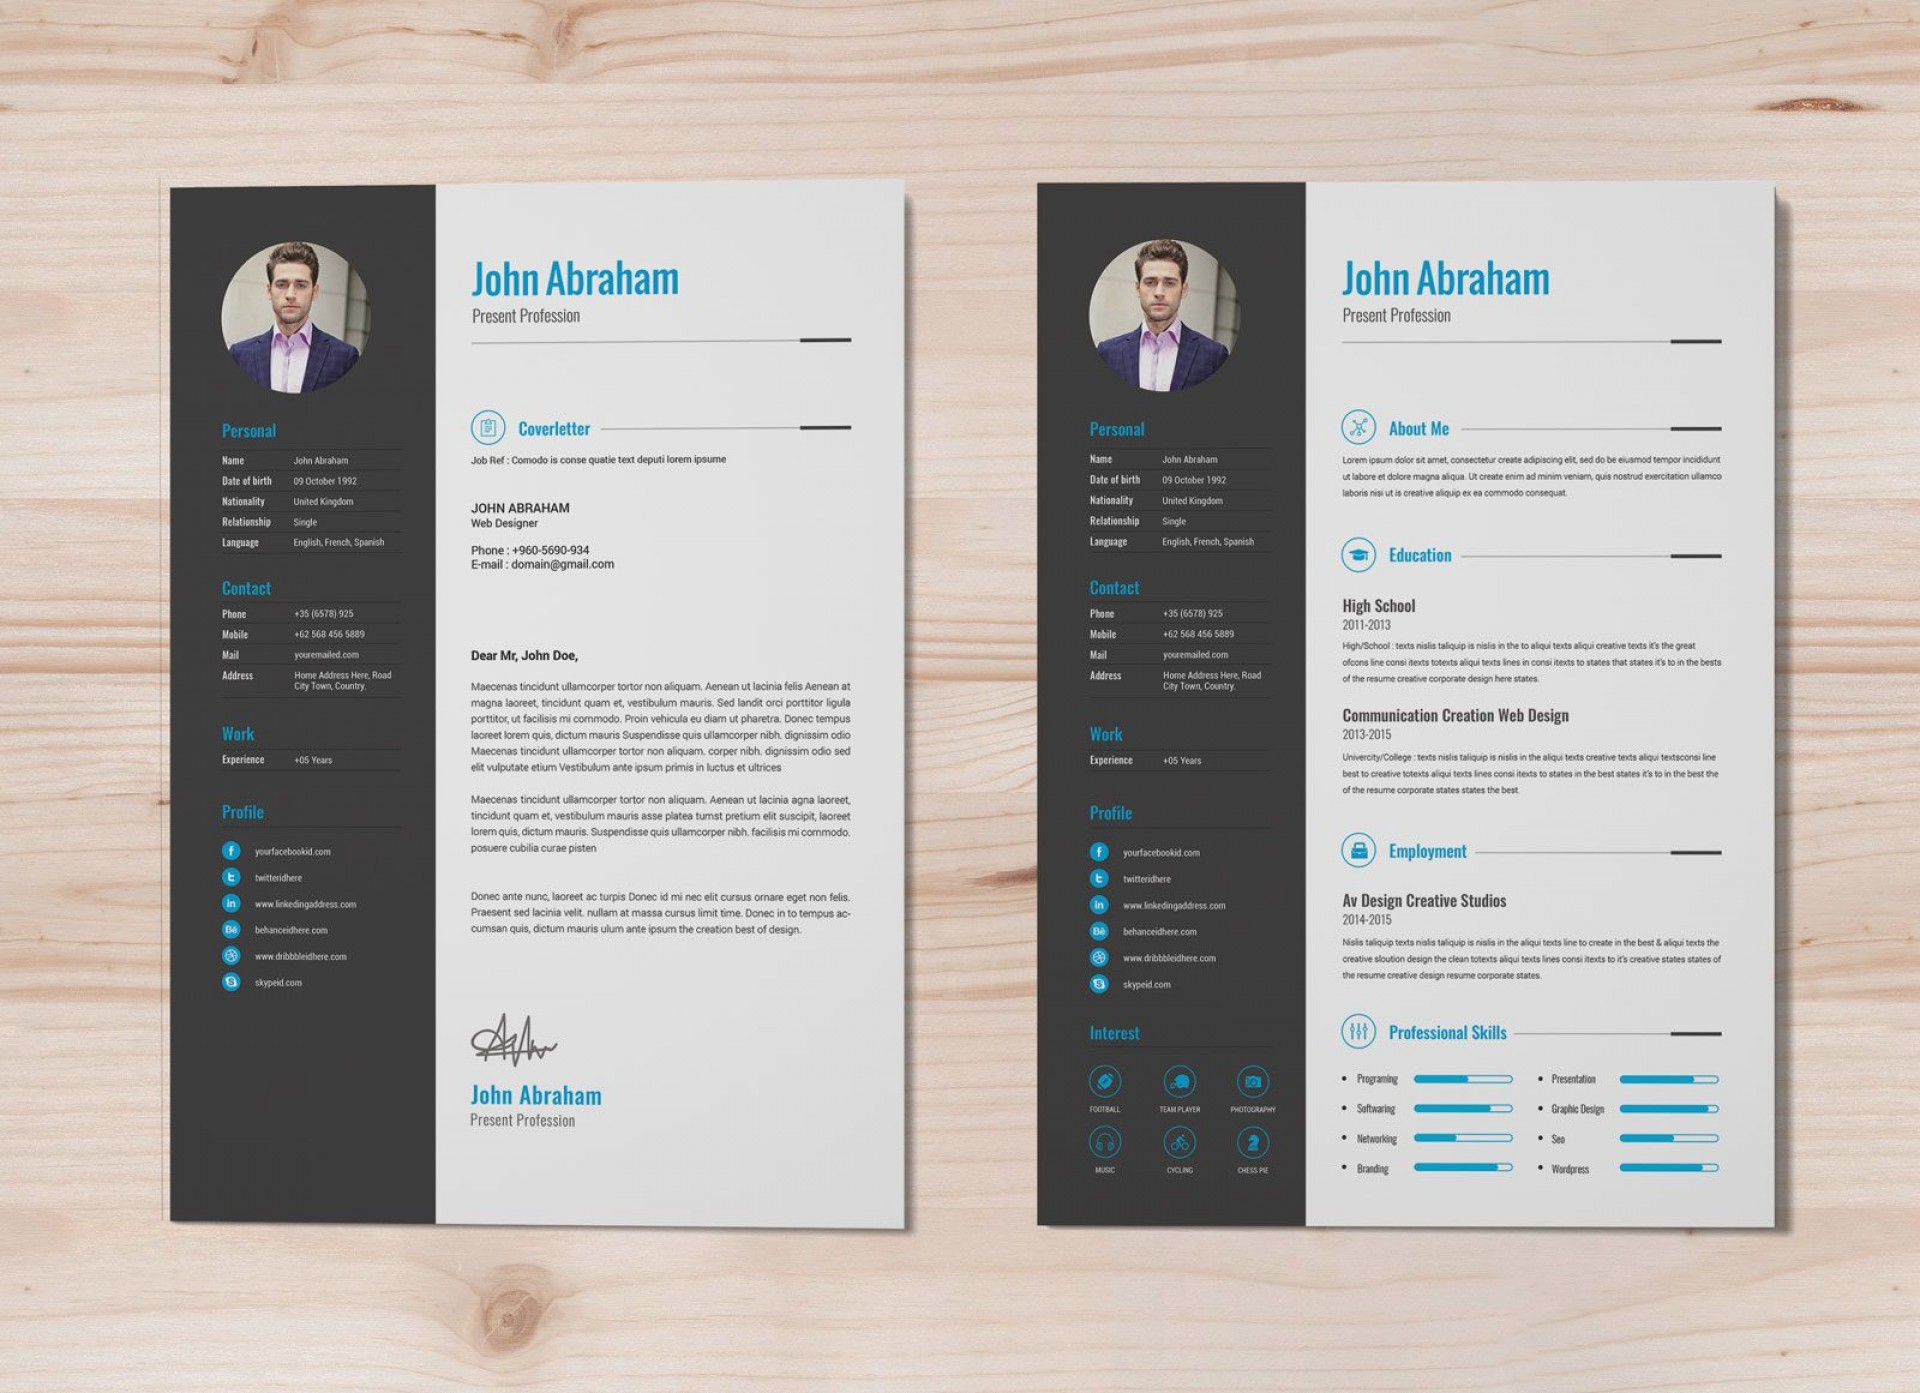 006 Archaicawful Best Professional Resume Template Highest Clarity  Reddit 2020 Download1920